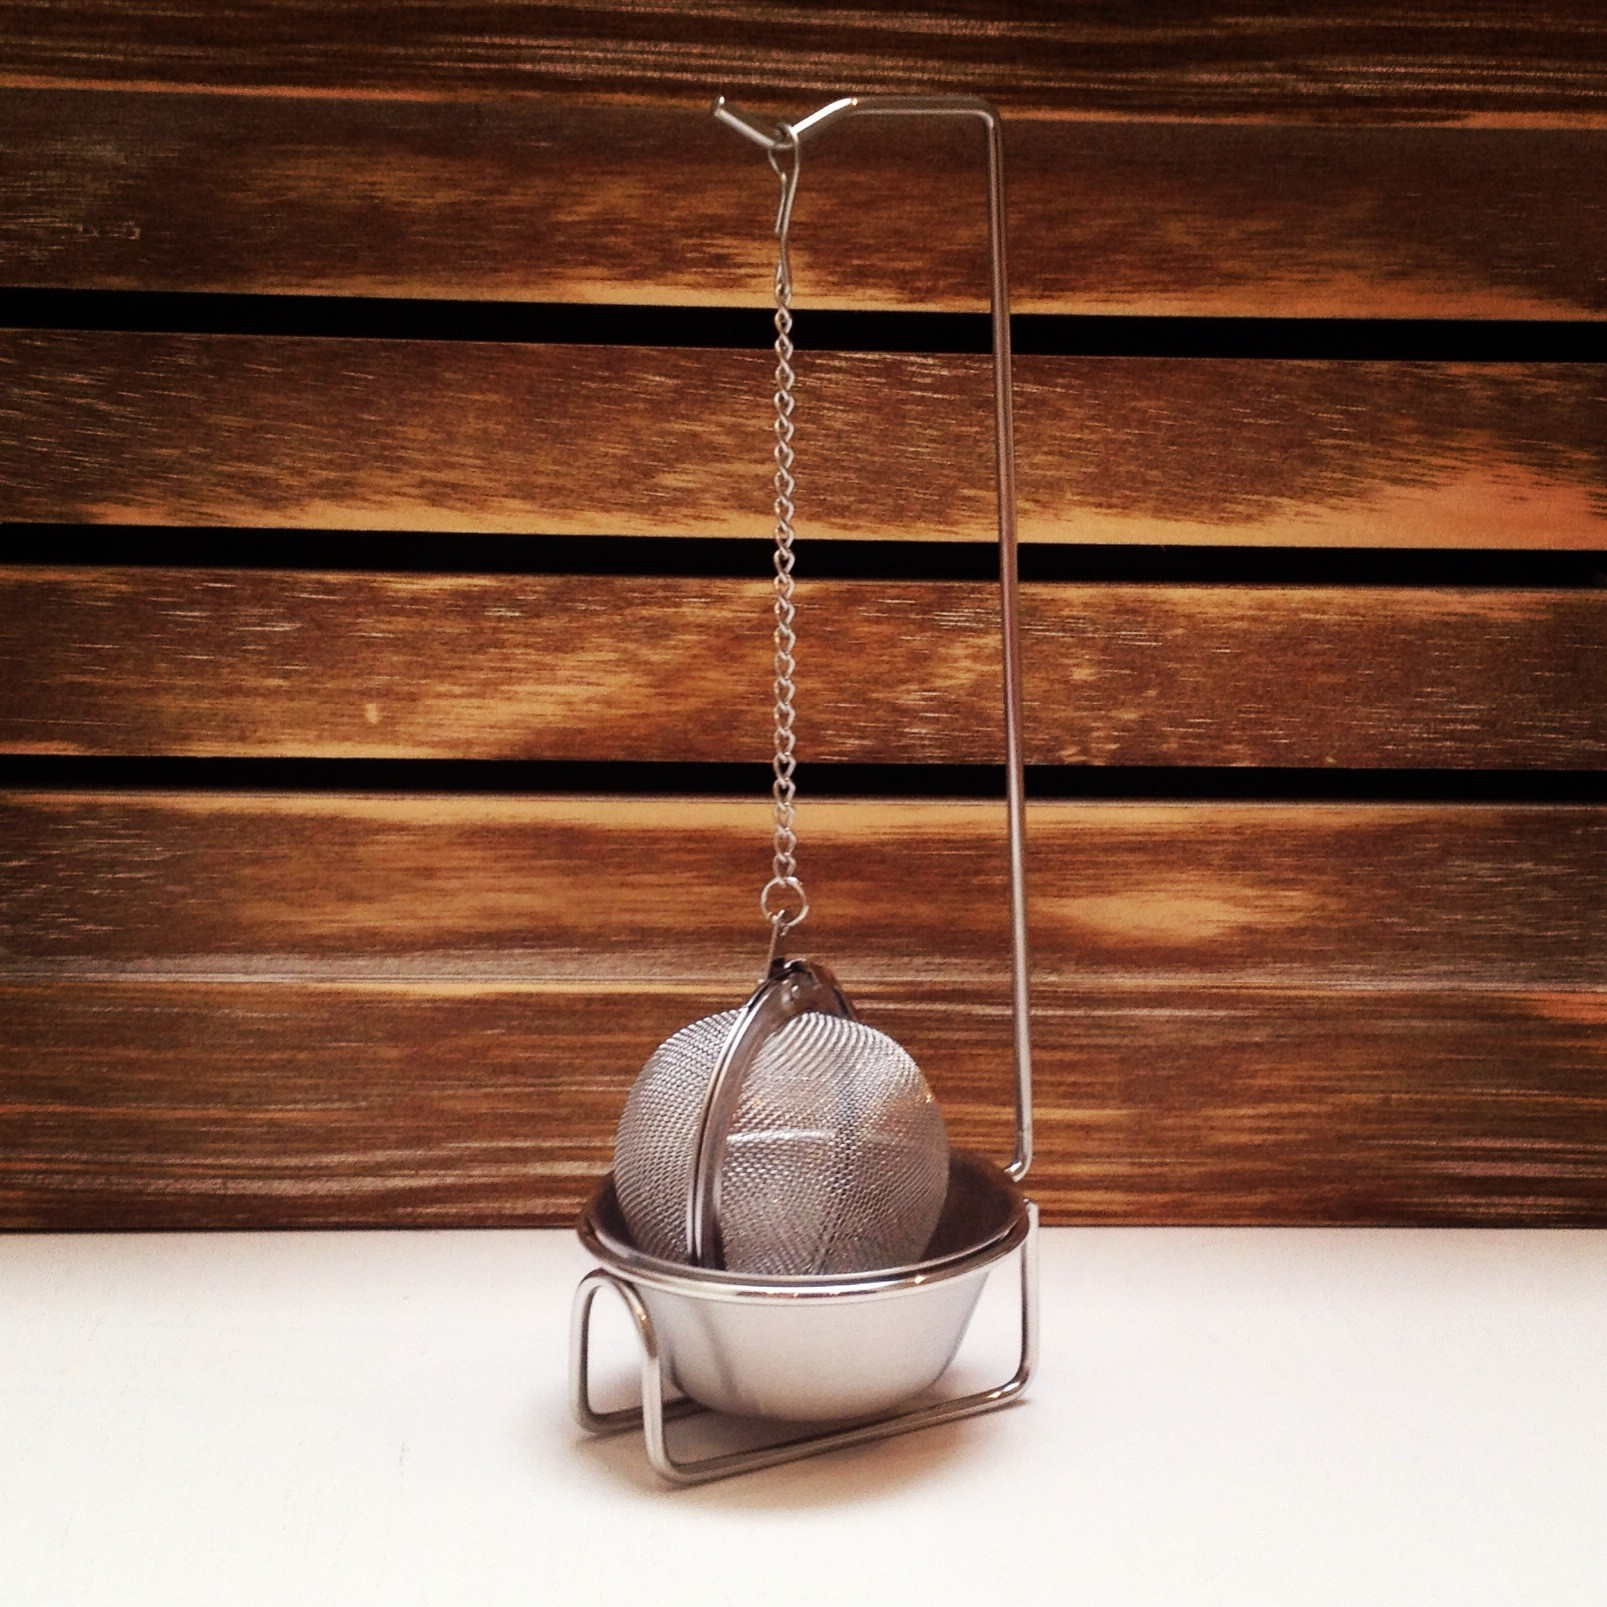 Stylish Hanging Tea Infuser with Bowl